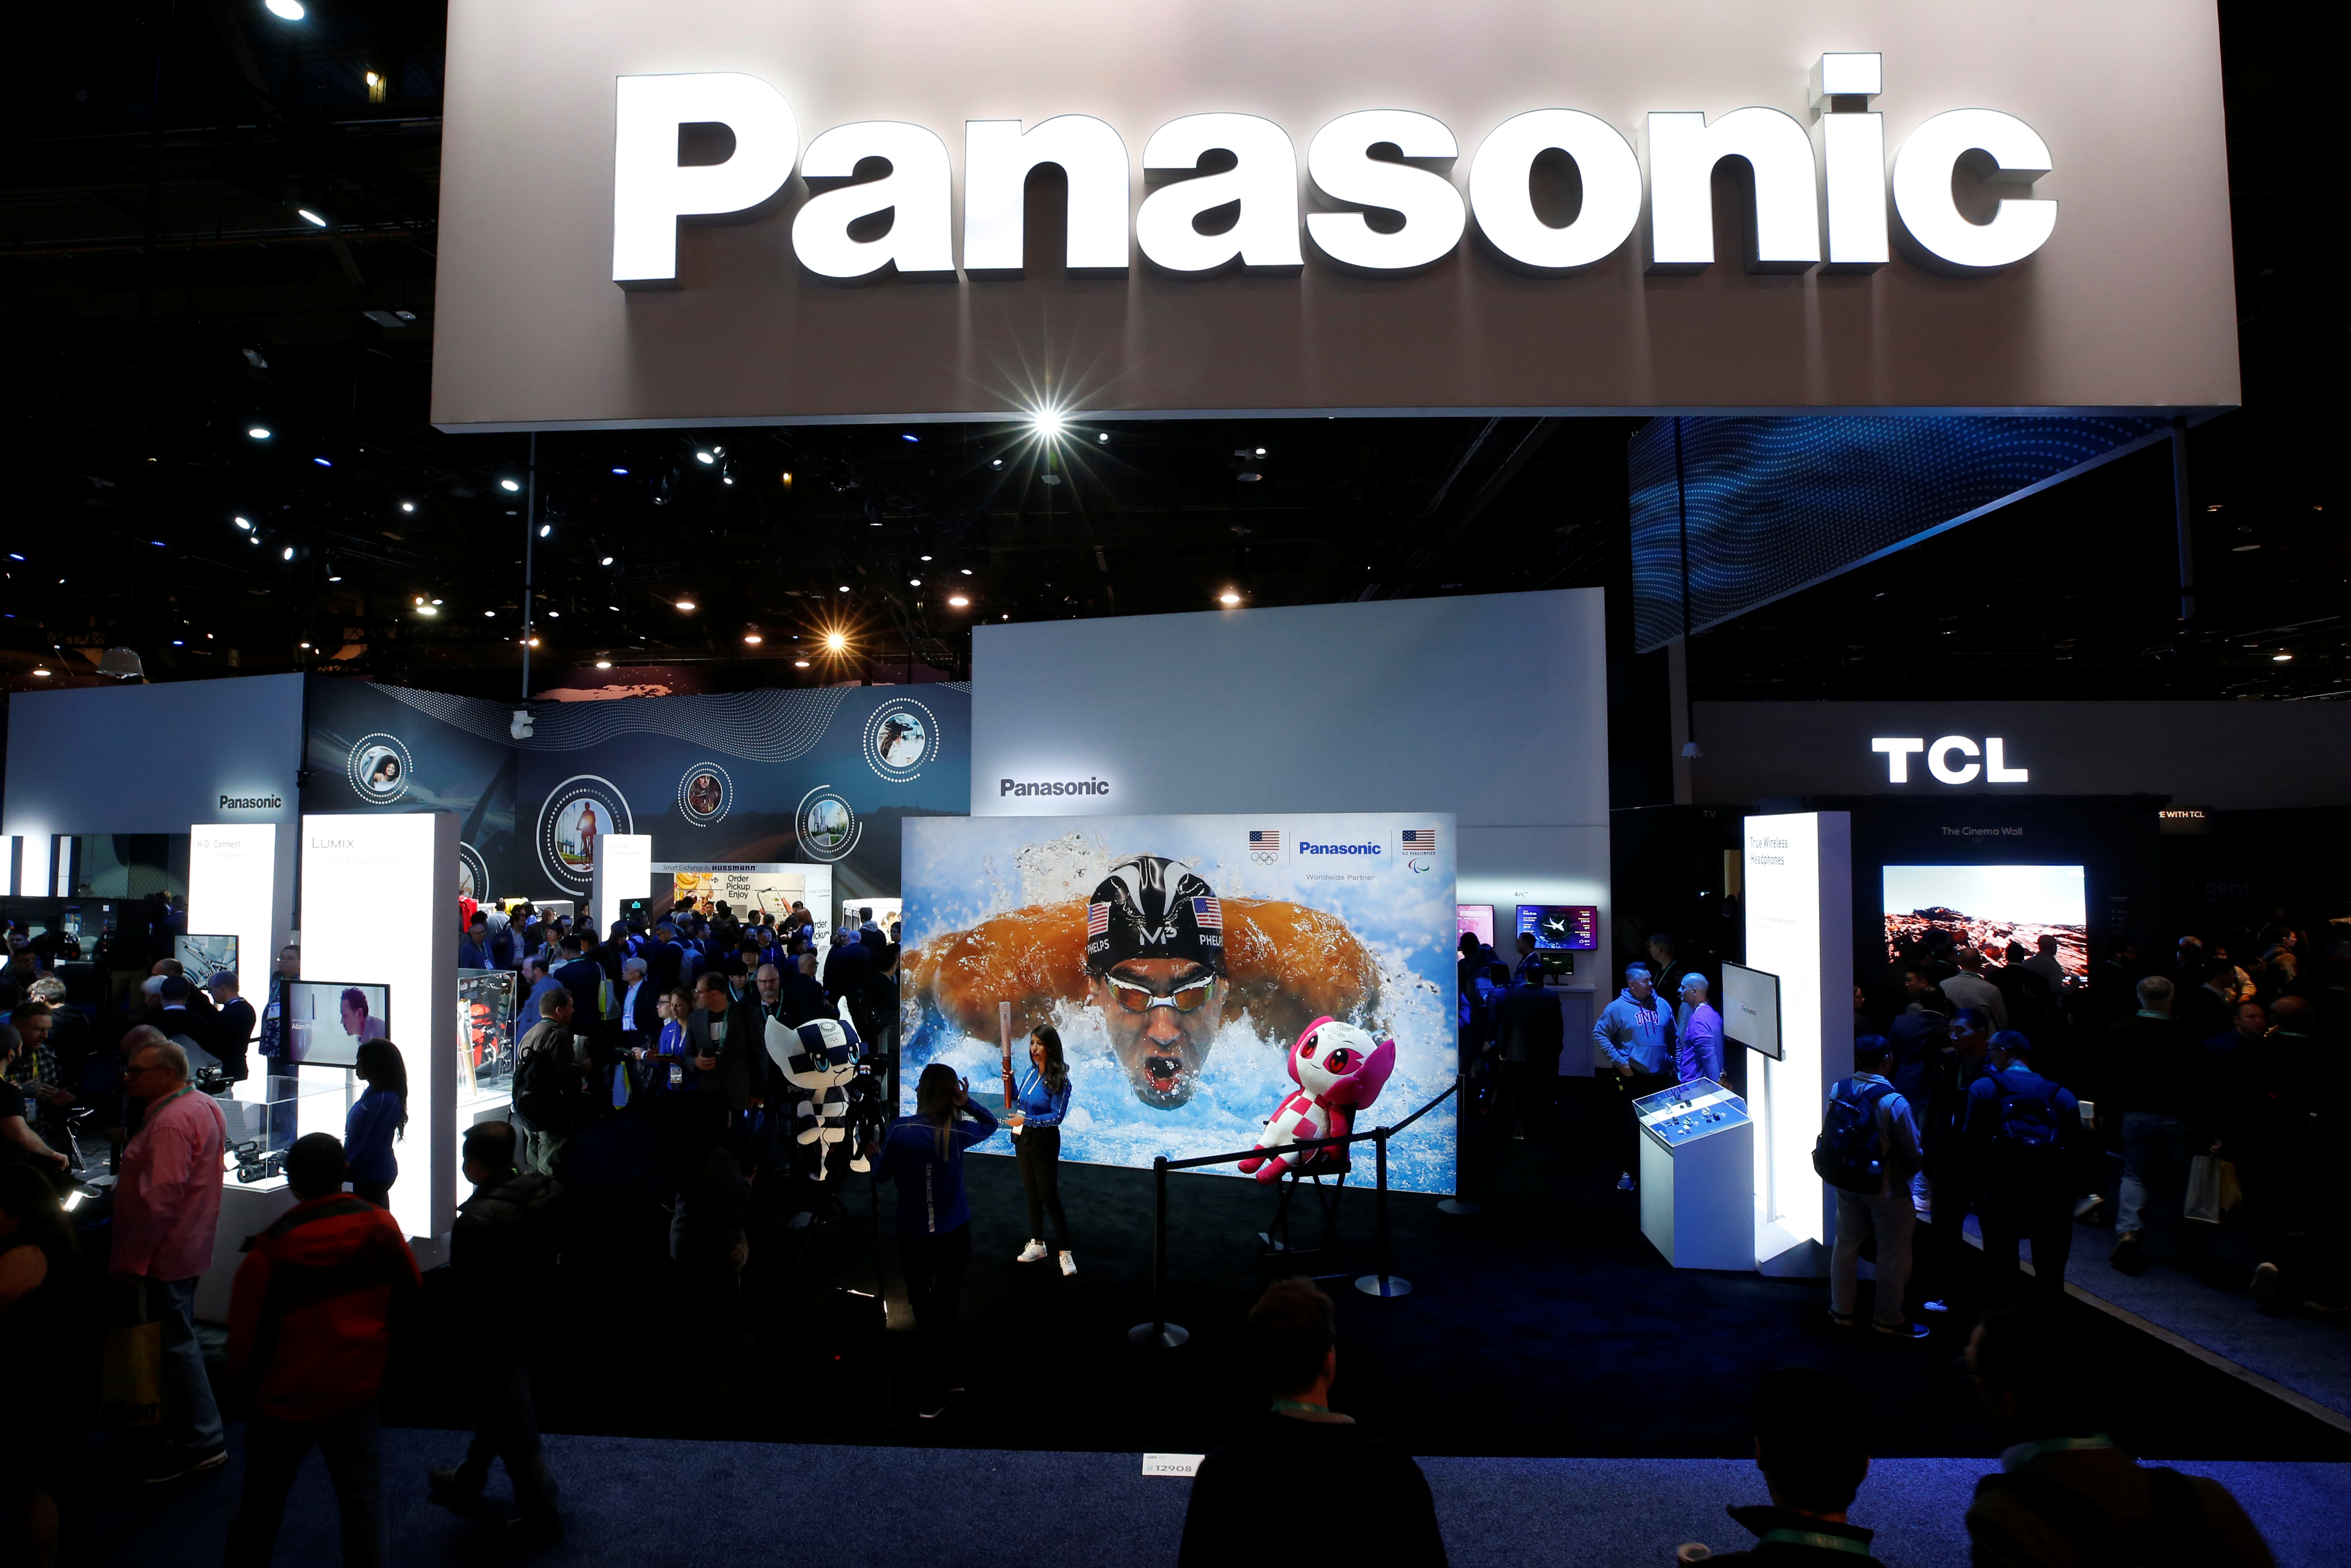 The Panasonic booth is shown during the 2020 CES in Las Vegas, Nevada, U.S. January 7, 2020. REUTERS/Steve Marcus